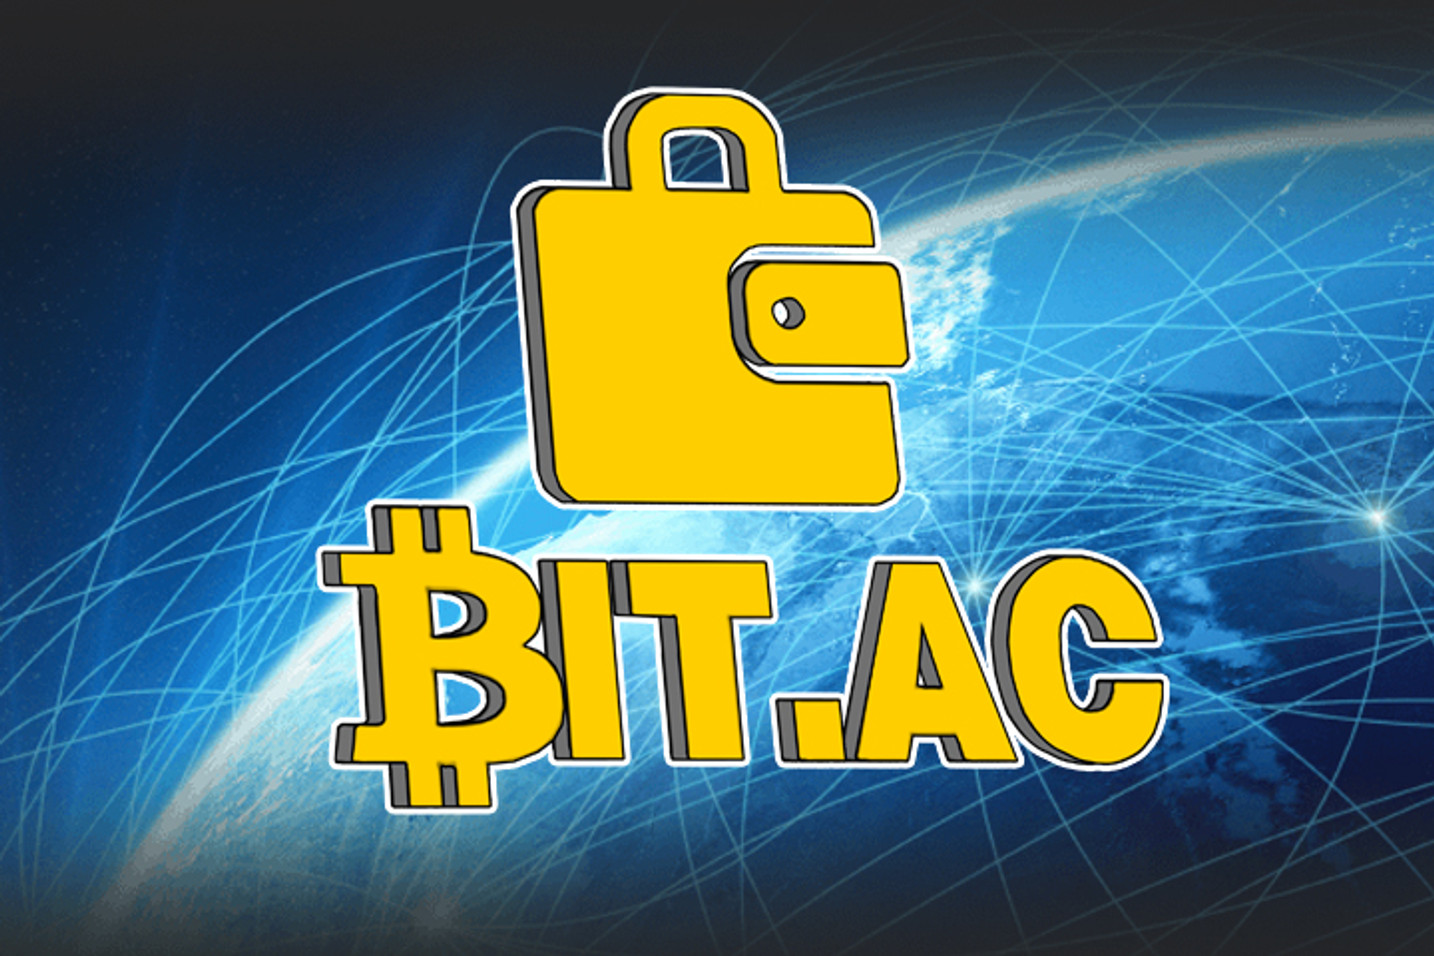 BIT.AC Adds Support For 22 More Crypto Currencies